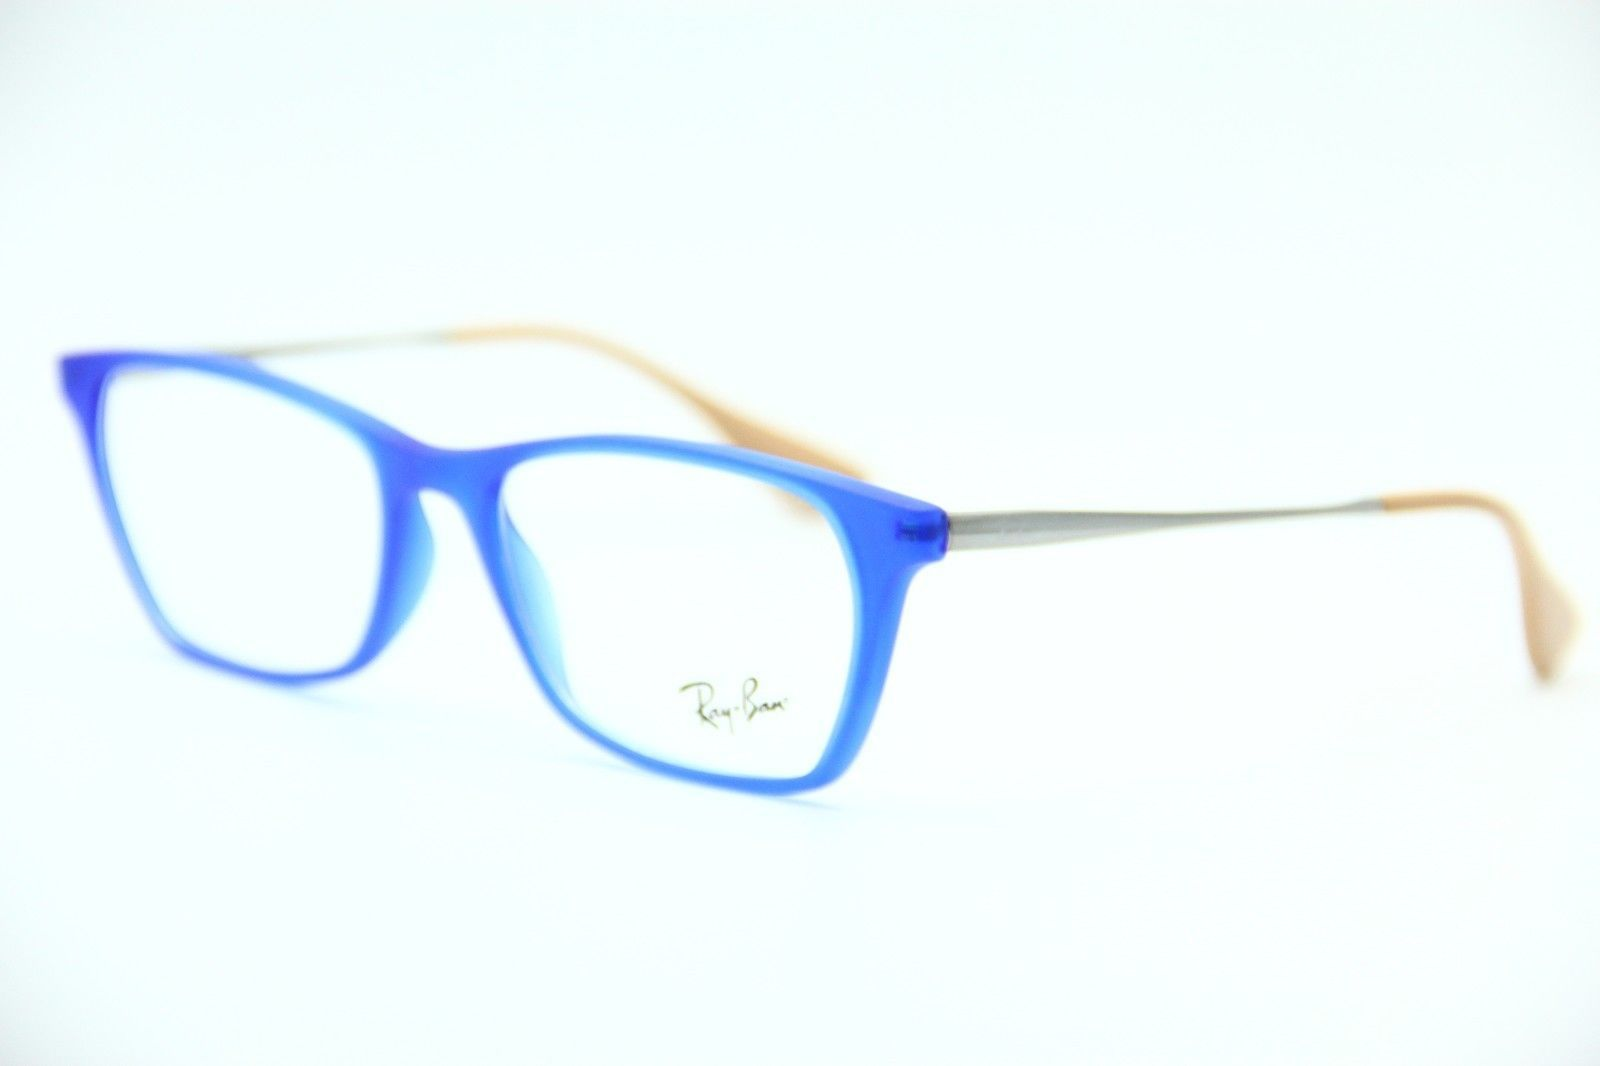 8f23483143 New RAY-BAN Rb 7053 5524 Blue Eyeglasses and 27 similar items. S l1600